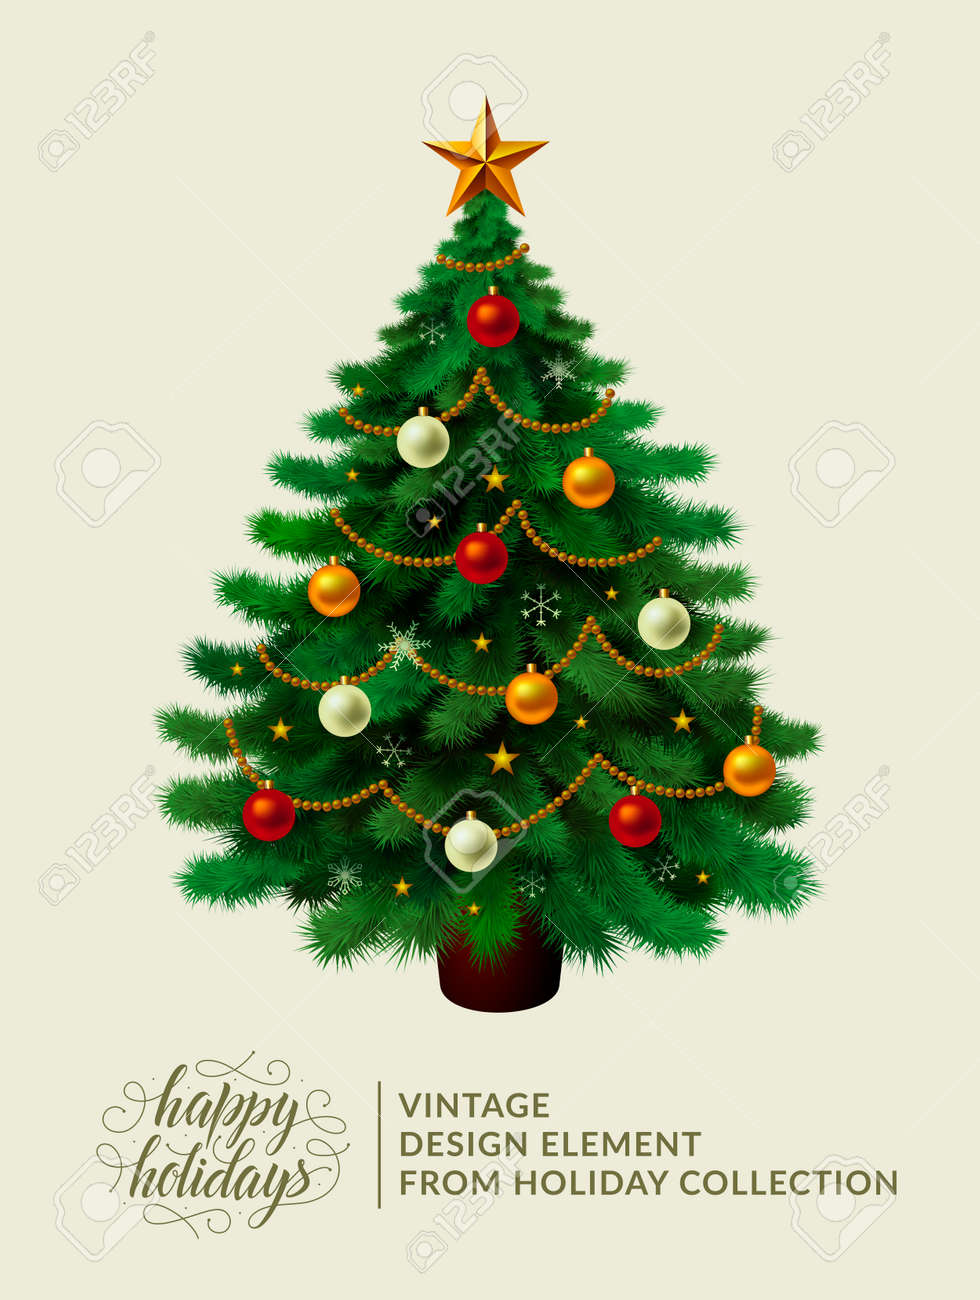 Vintage Christmas Tree With Xmas Decorations Ornaments Stars